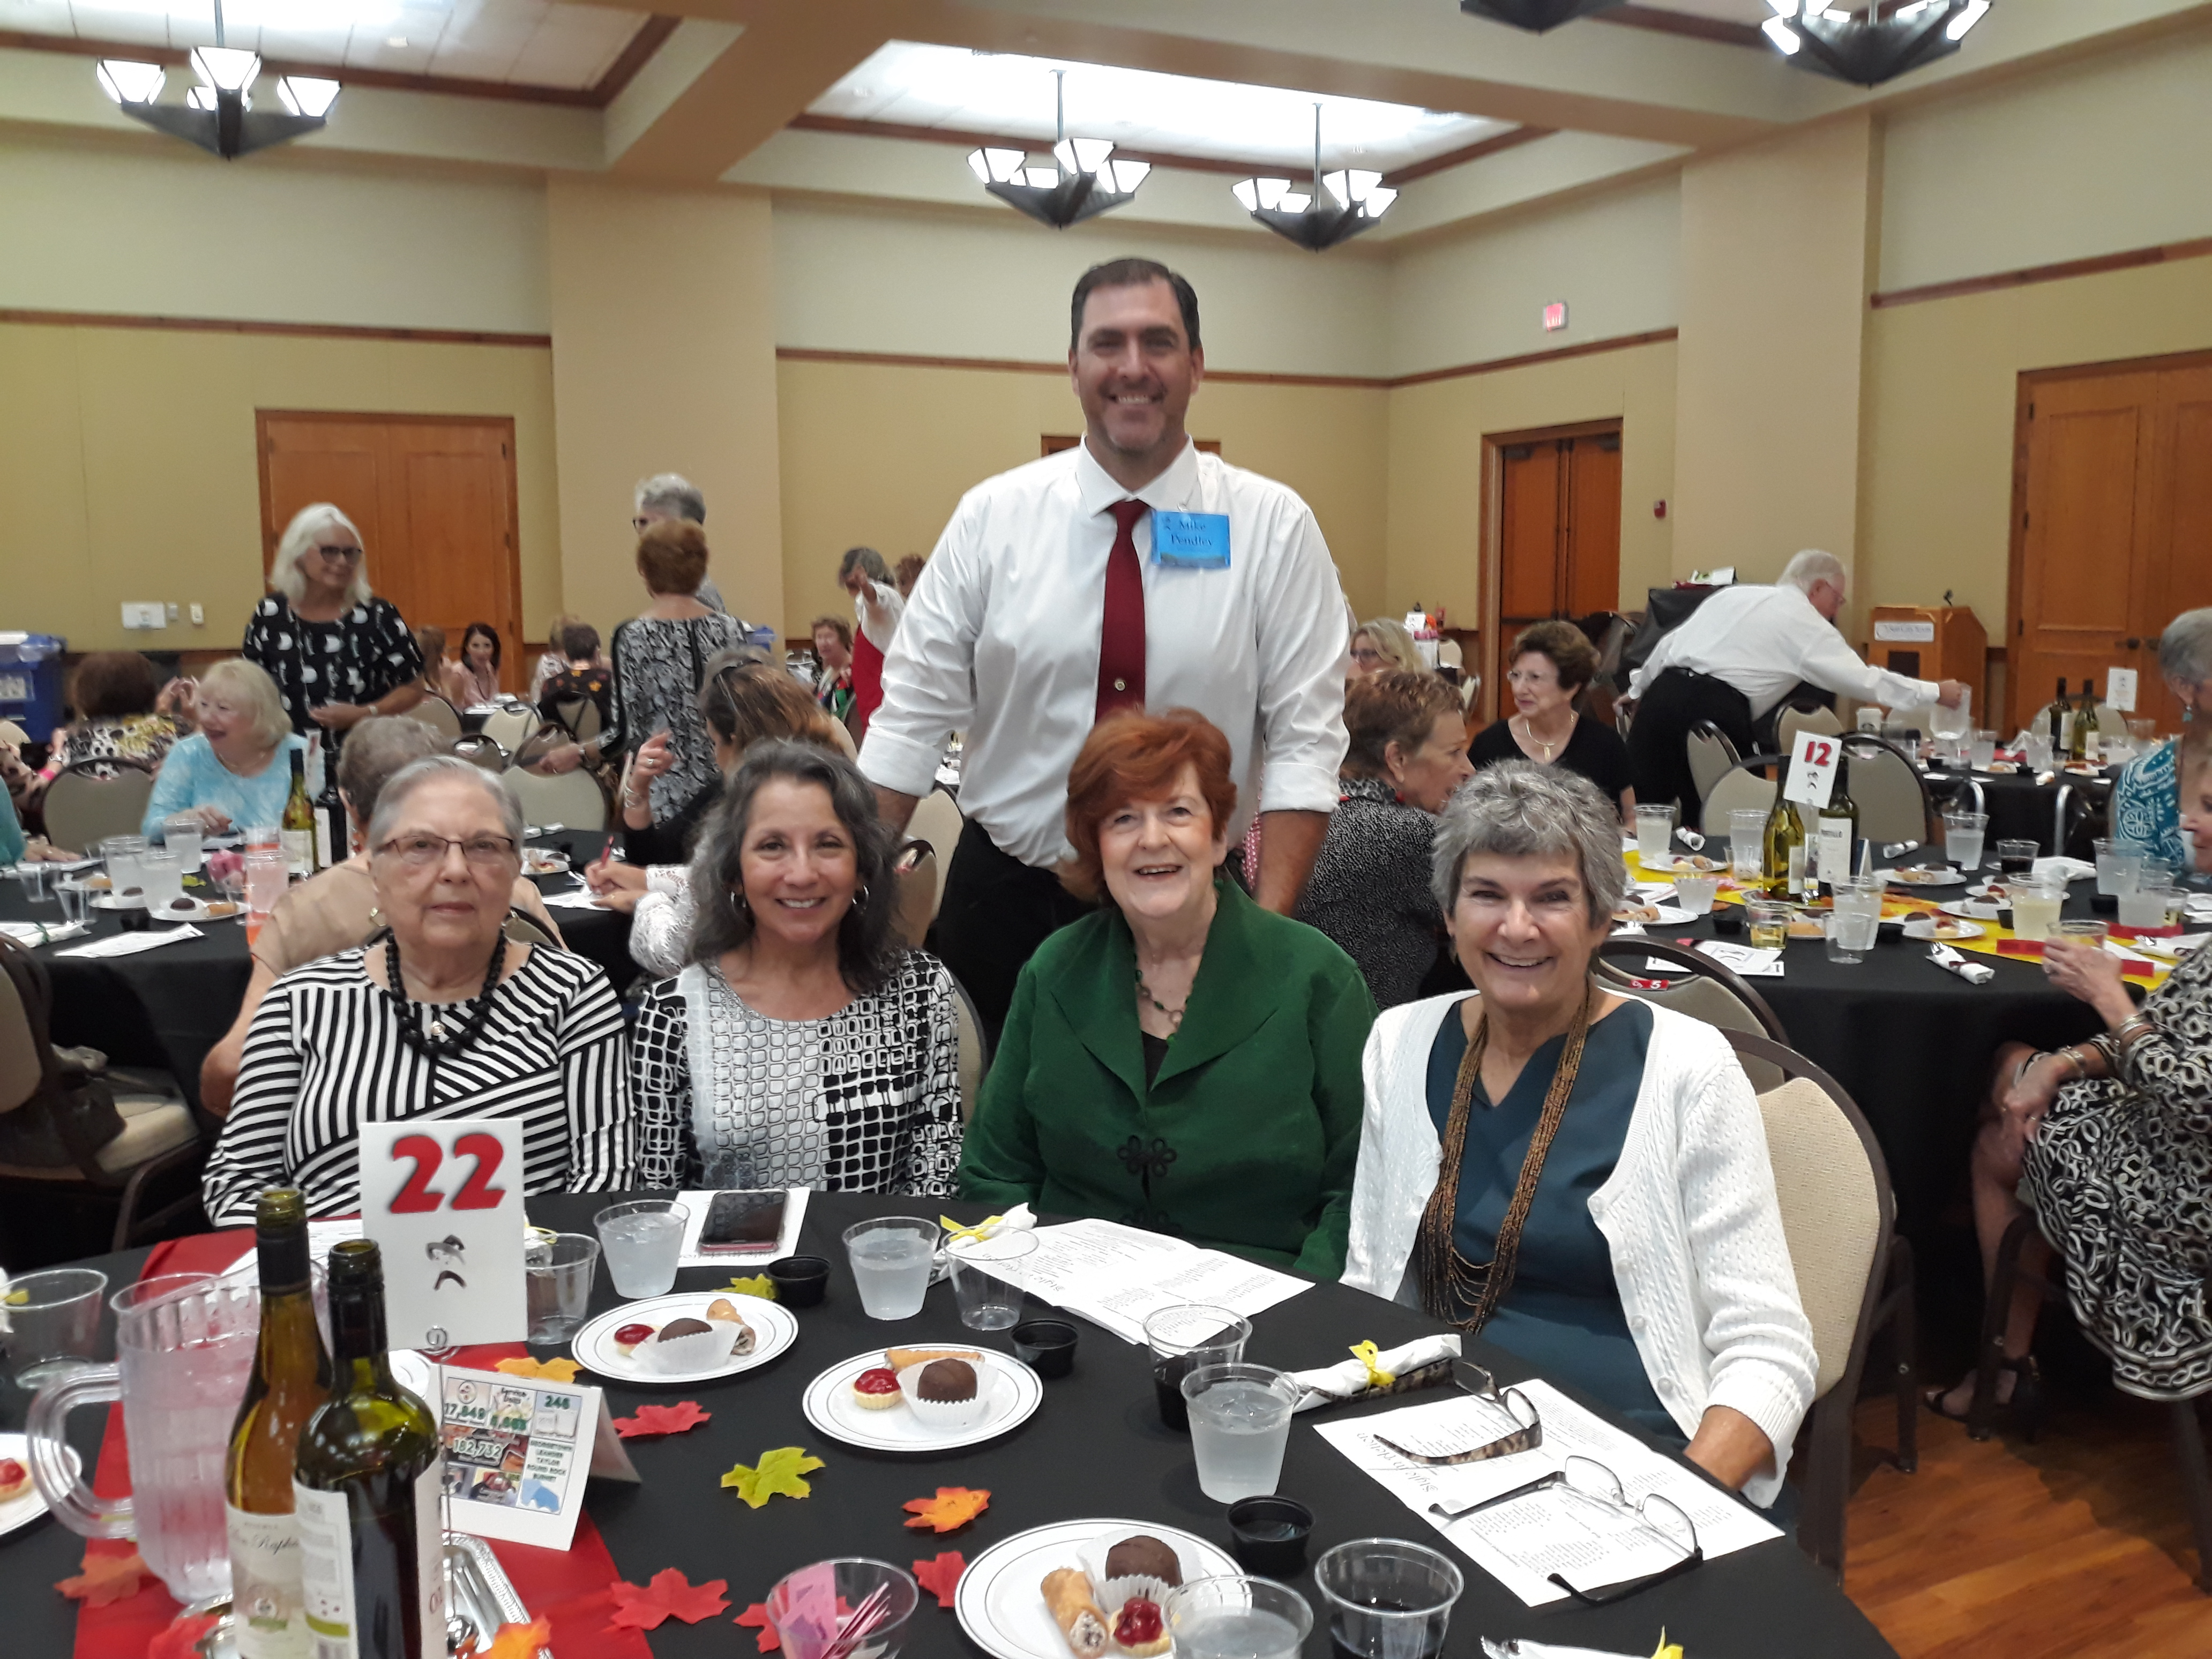 Joining Commissioner Cook at her table were Sun City residents (lft to rt) Karen Mulkey, Janie Clark and Barb Bigger and Precinct 1 Chief Deputy Constable Mike Pendley, the table's server and winner of highest tipped server.